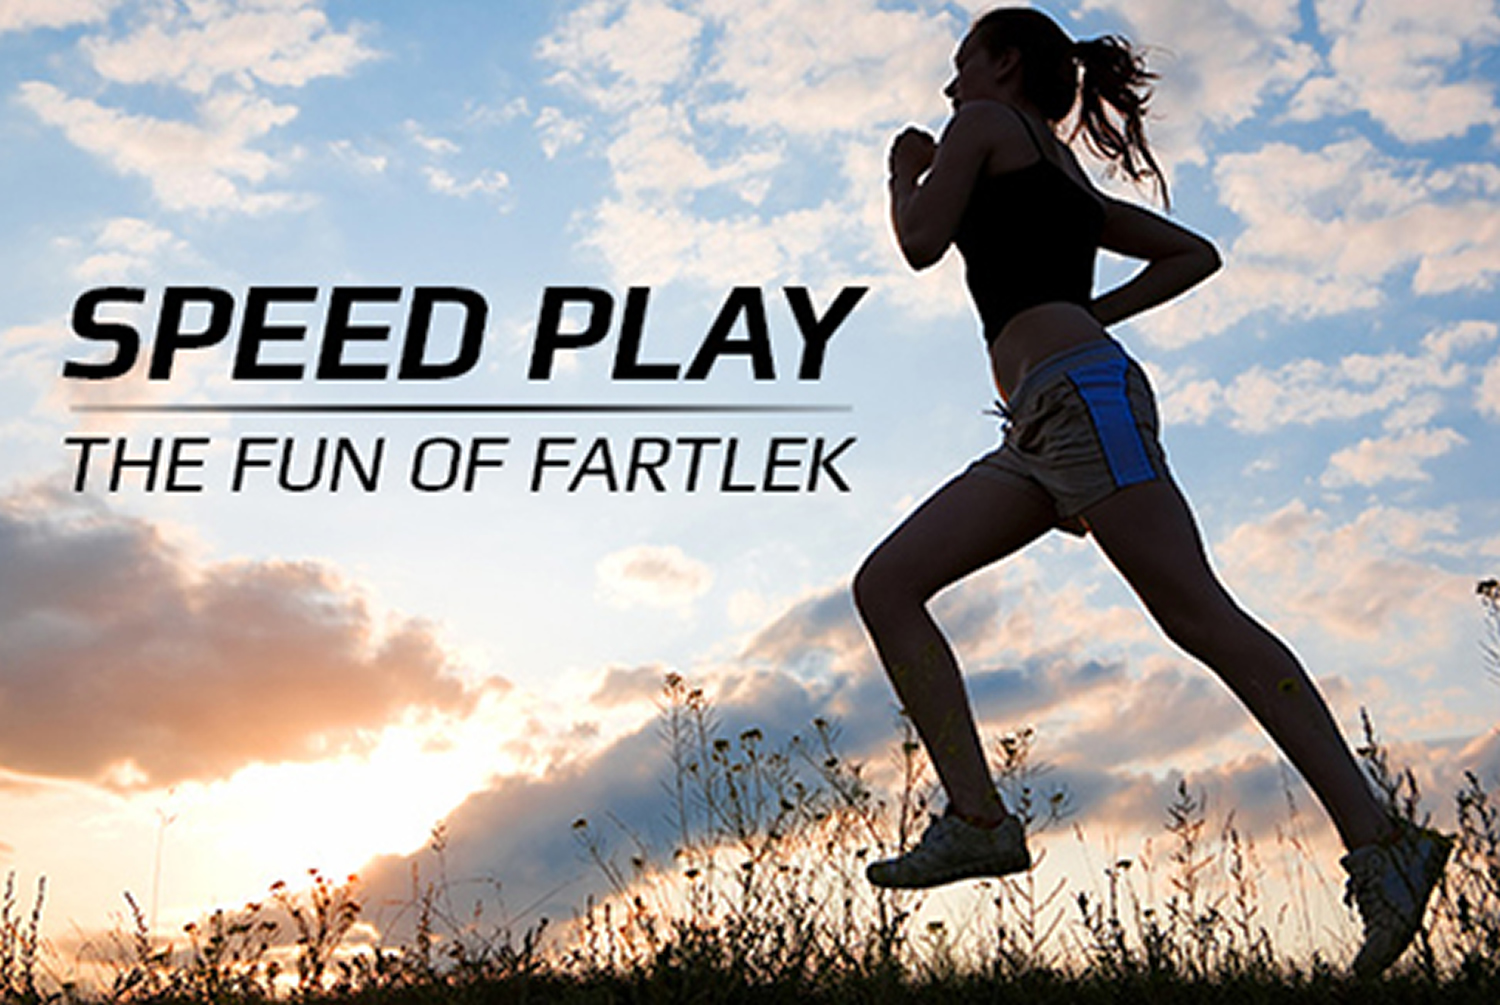 Speed Play - The Fun of Fartlek